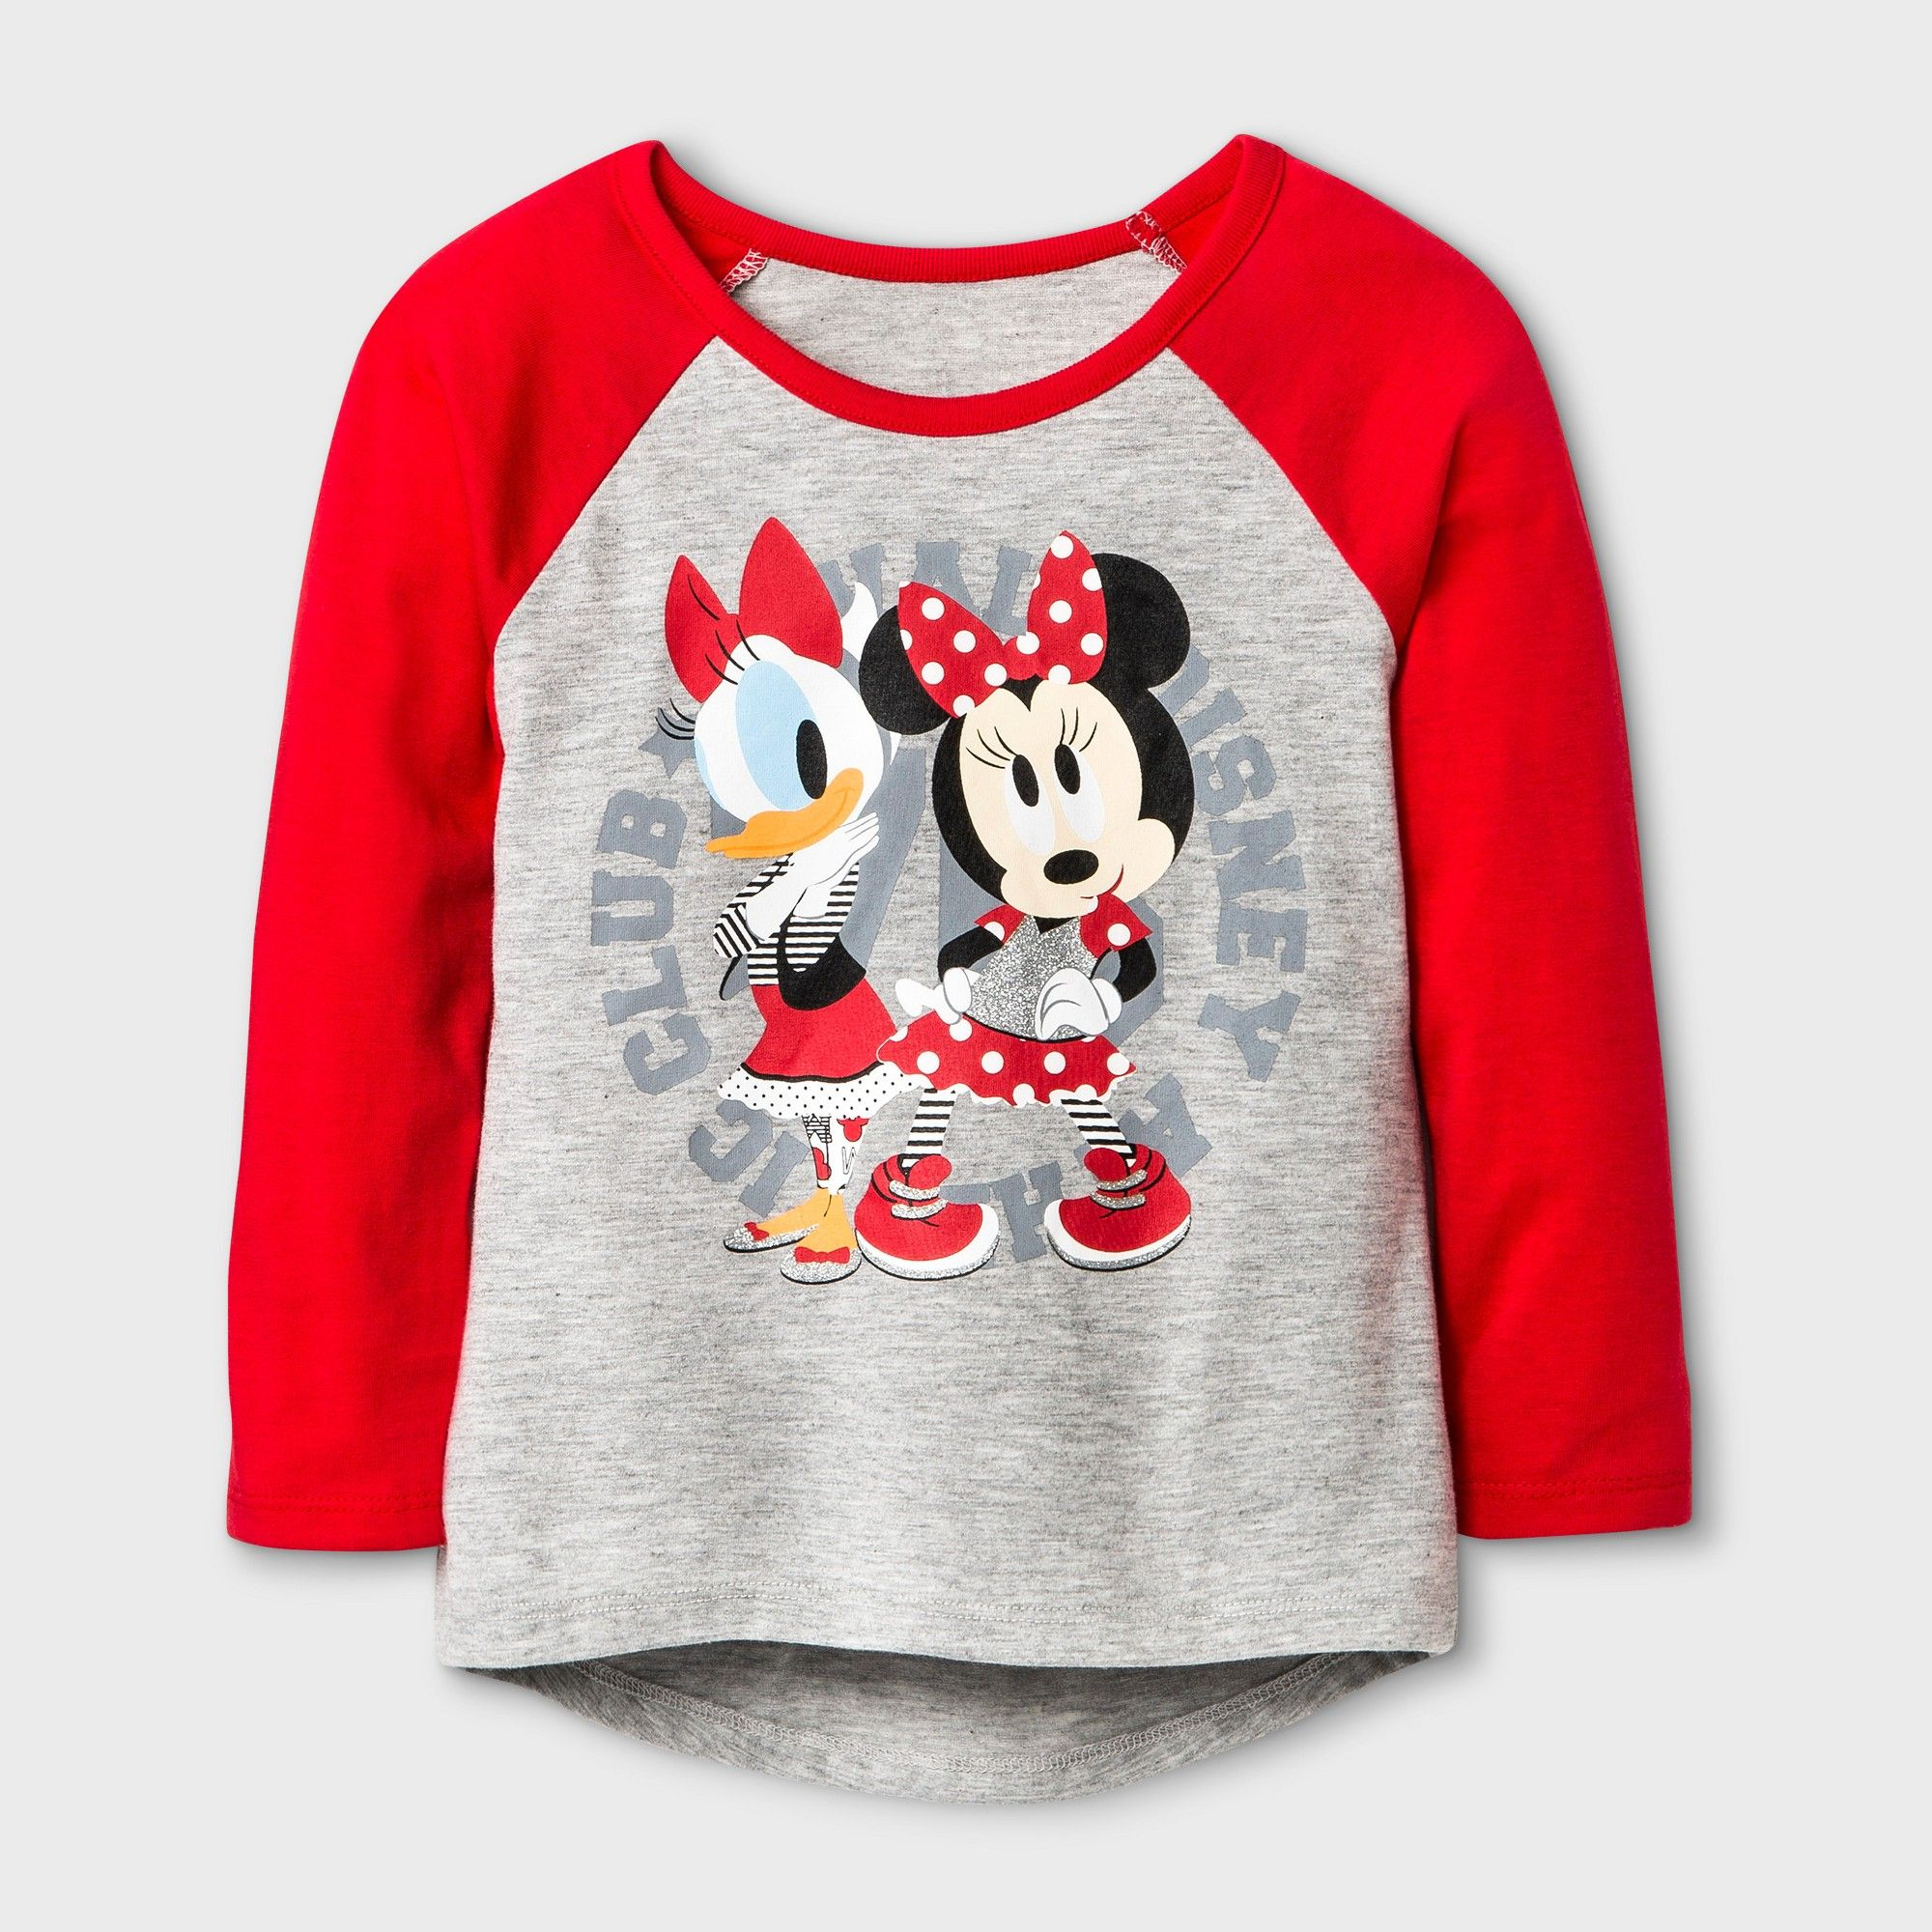 Chic Letter BABYGIRL Printed Long Sleeve Crew Neck Color Block